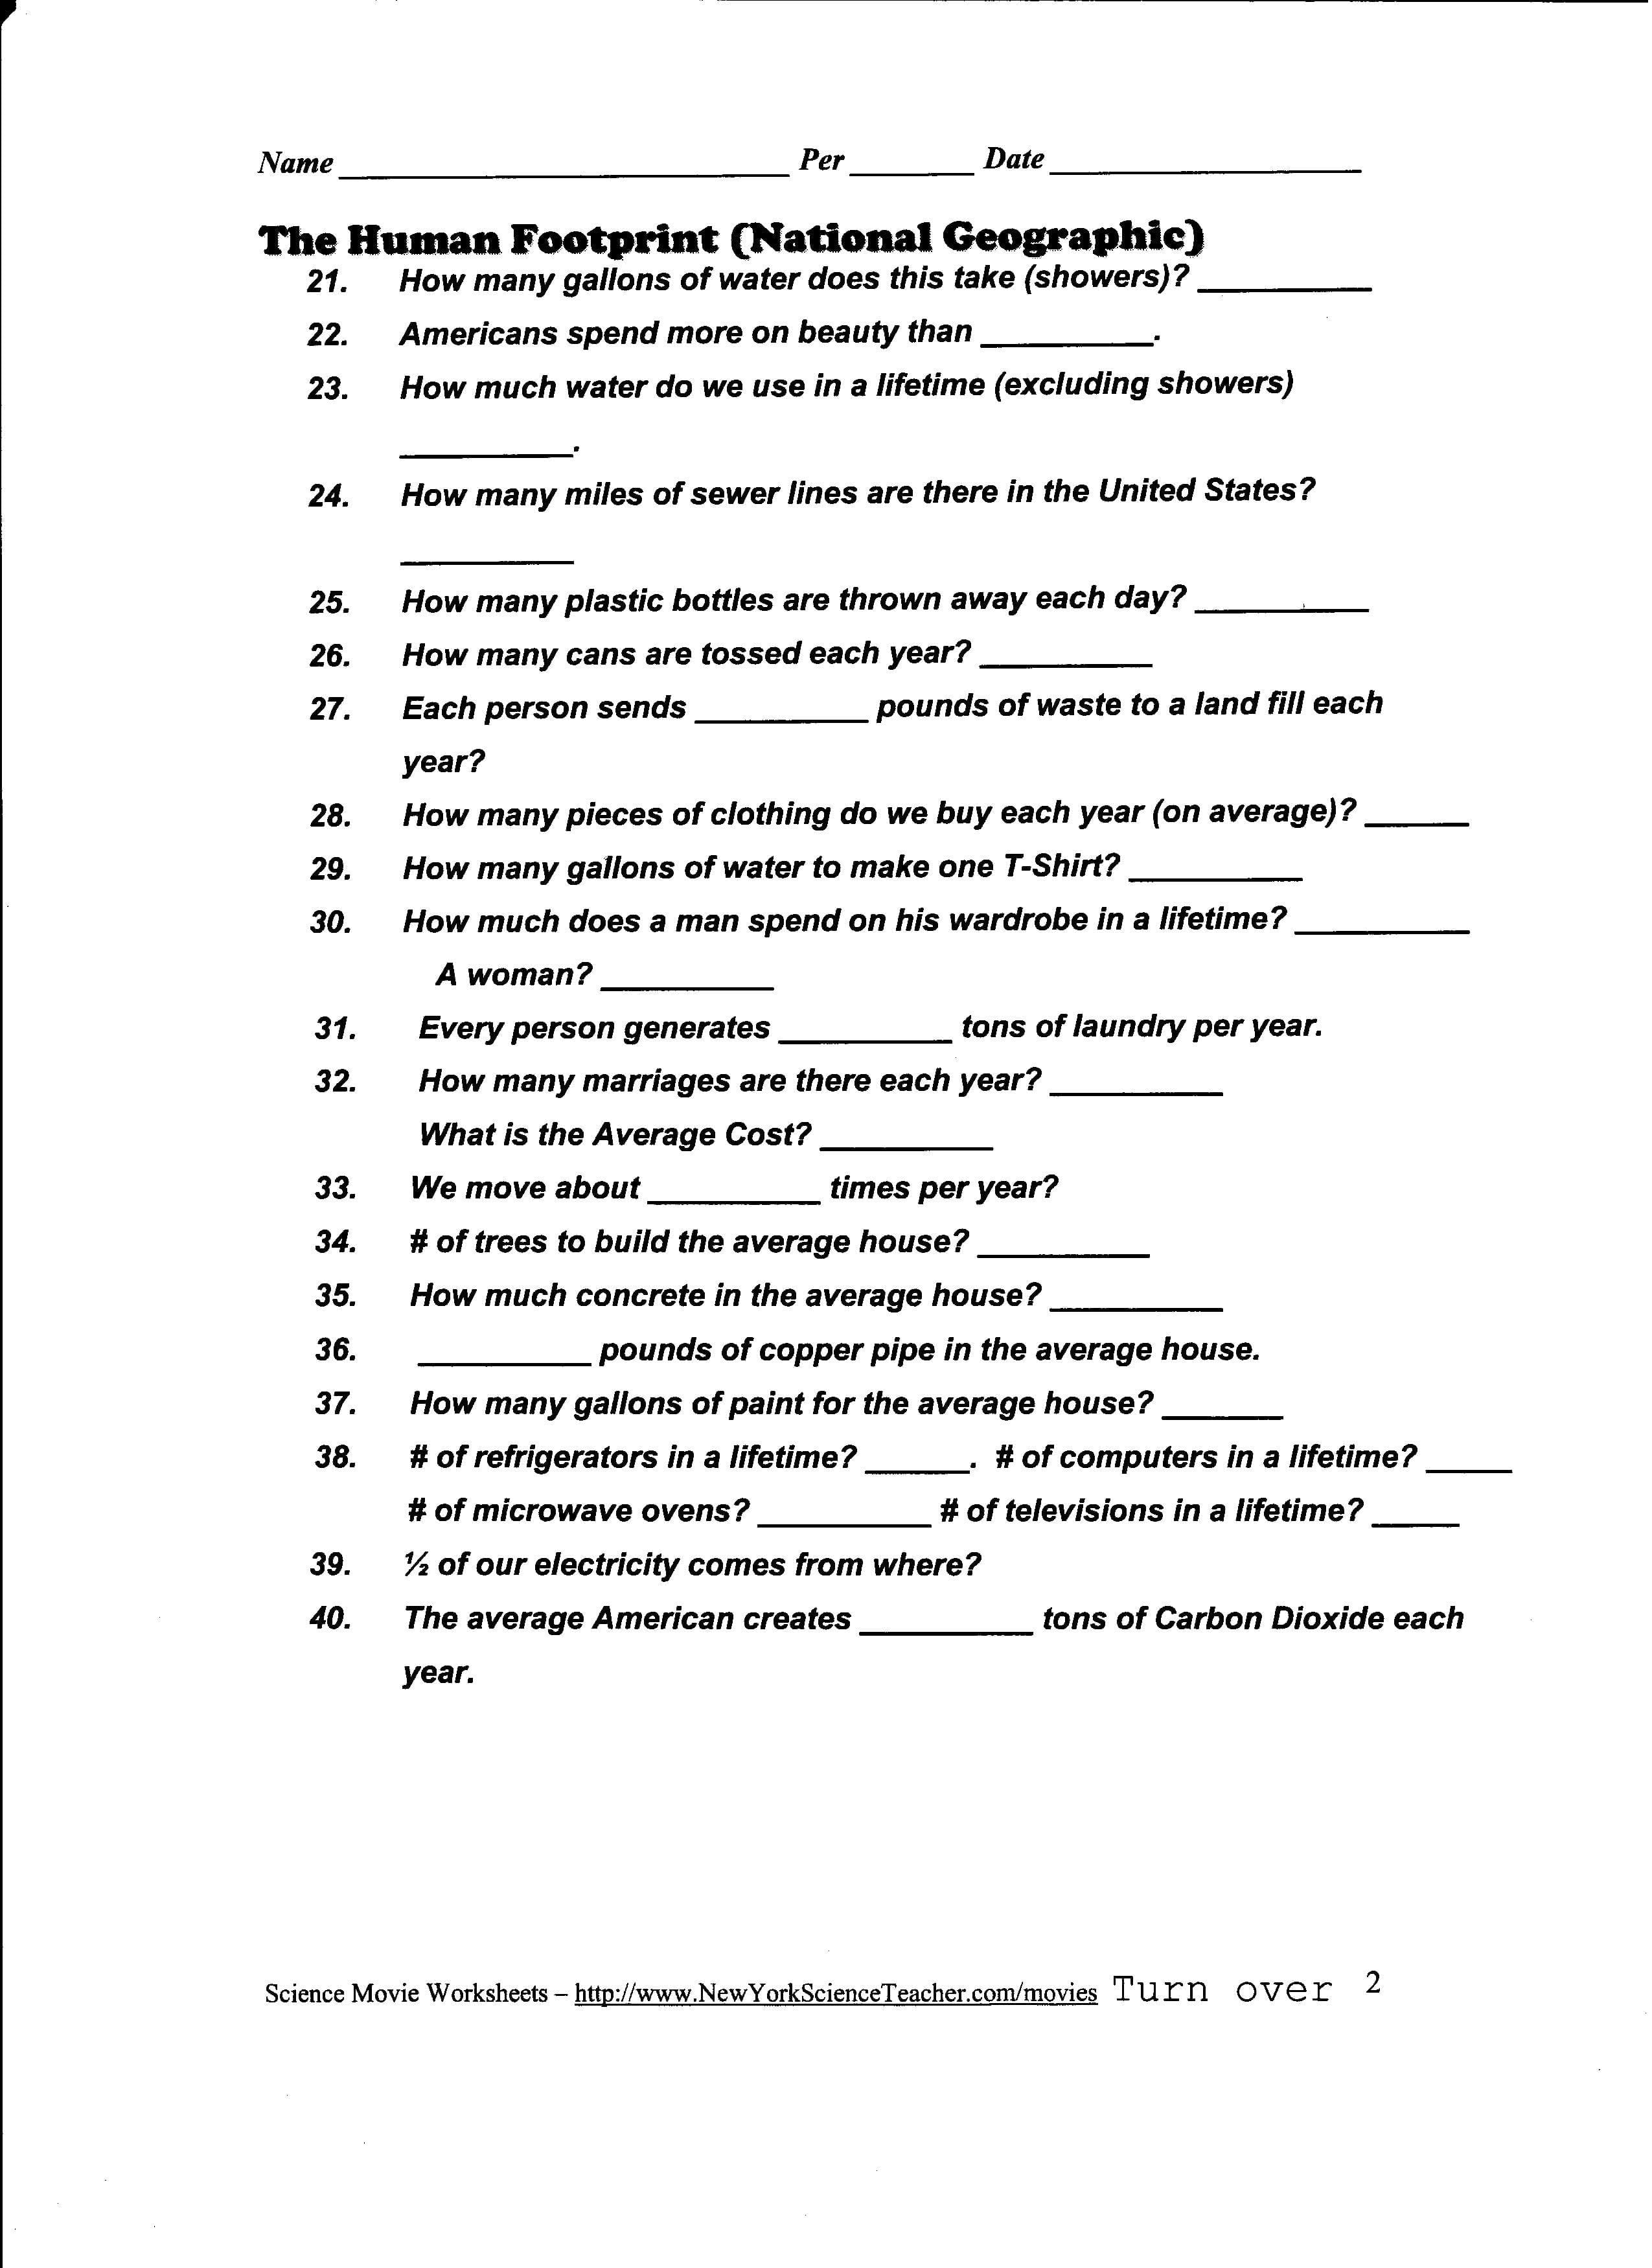 Printables Ecological Footprint Worksheet Lemonlilyfestival Inside Ecological Footprint Worksheet Answers